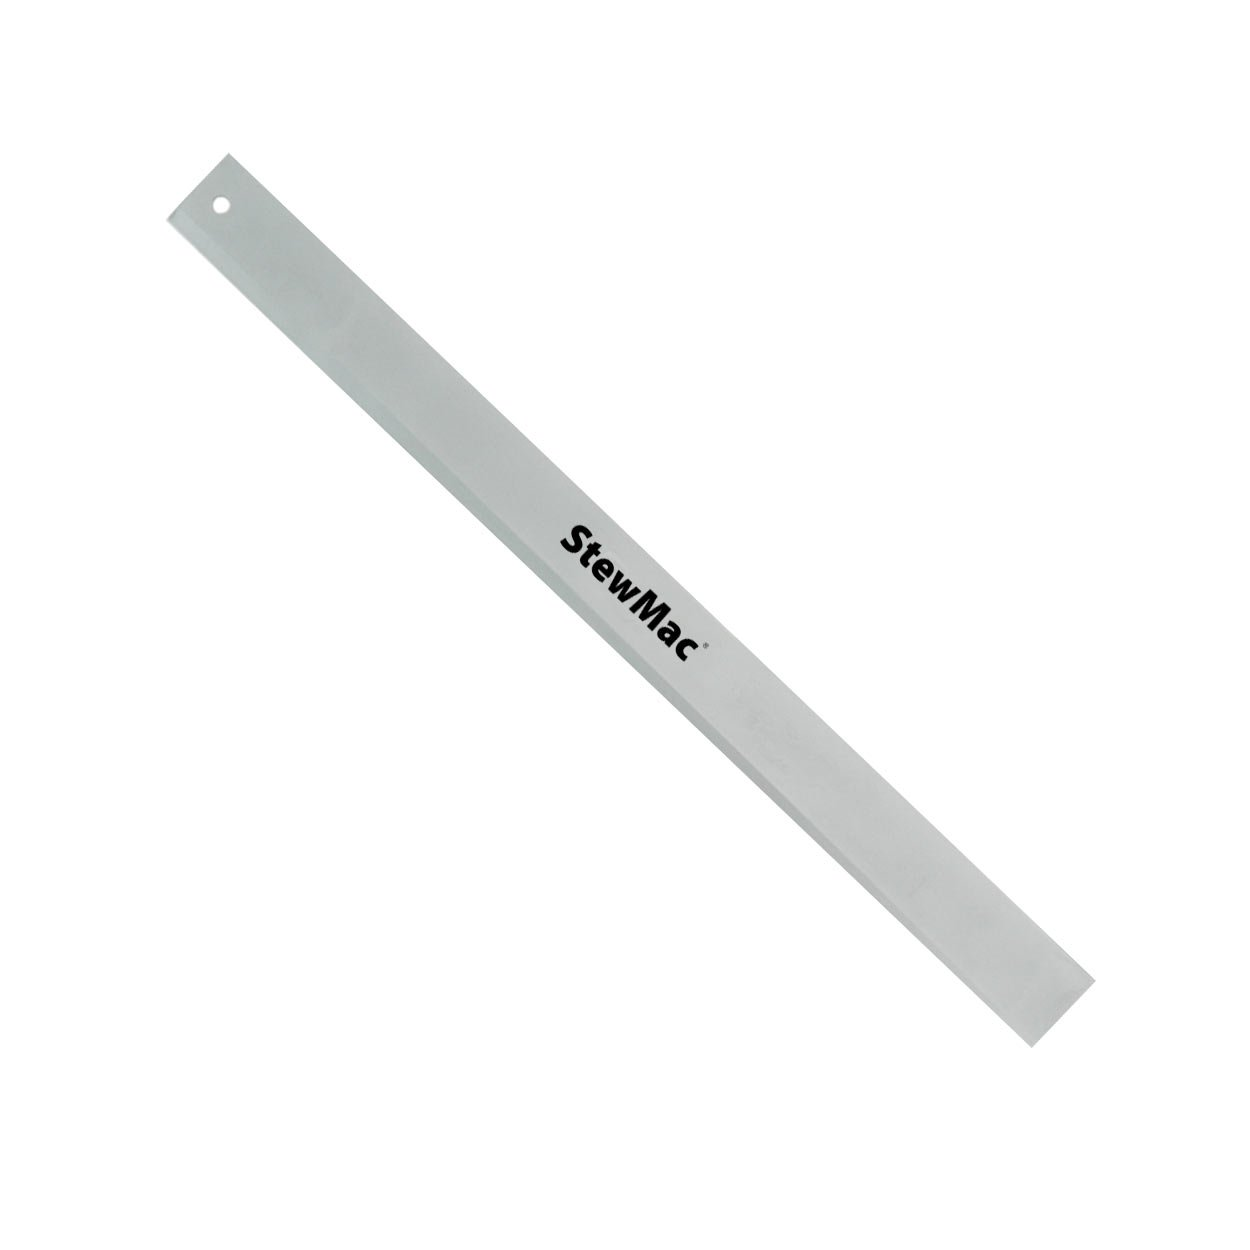 StewMac Precision Straightedge for Checking Neck Straightness and Relief on Stringed Instruments, 18'' Length